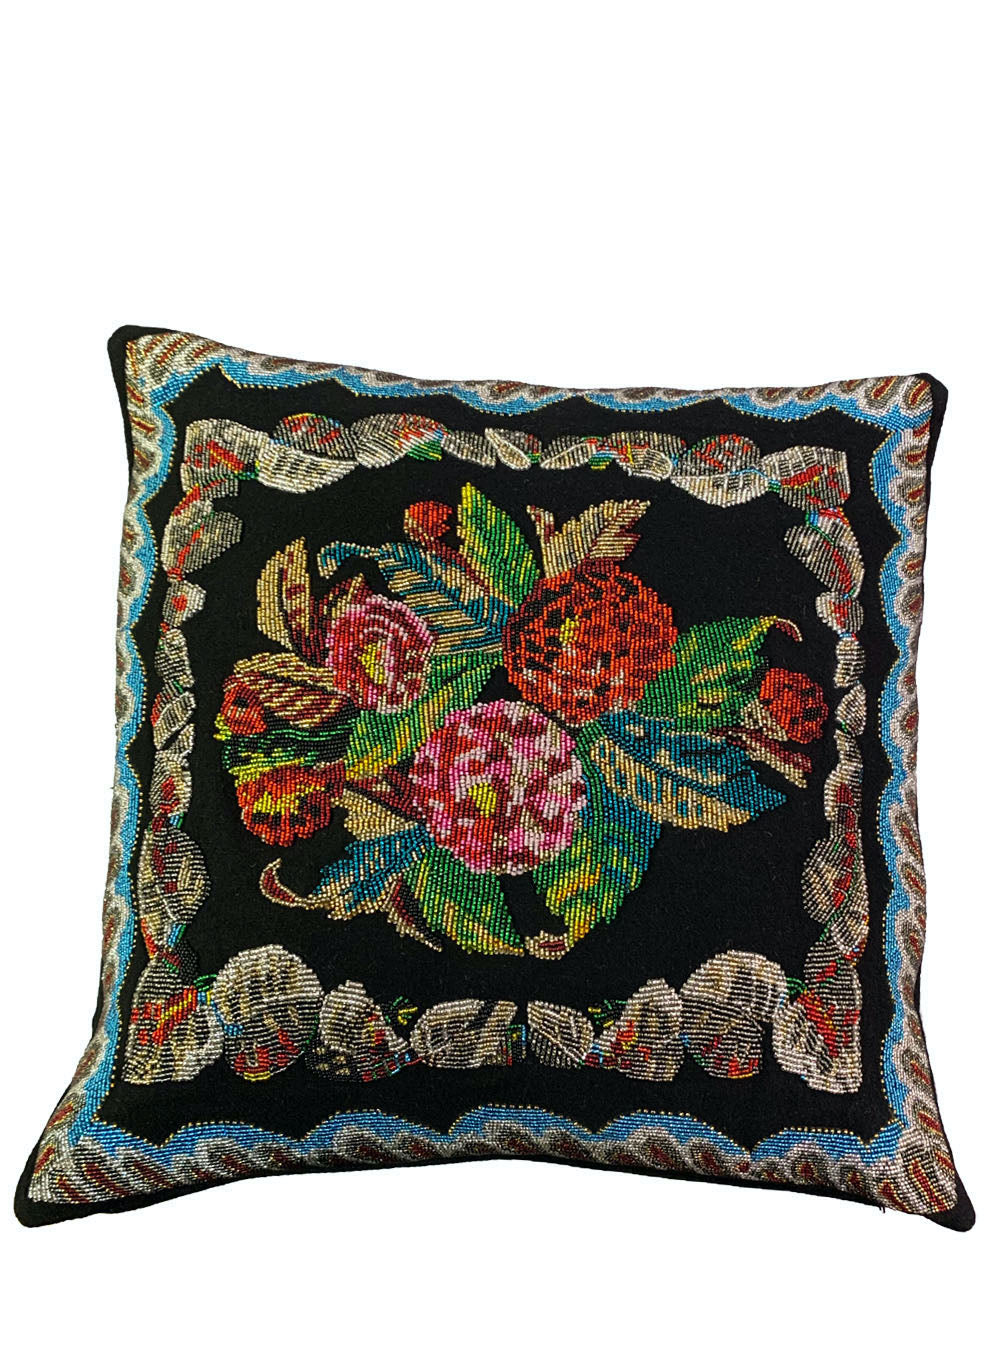 EMBROIDERED FLORAL PILLOW - Web Exclusives - Libertine